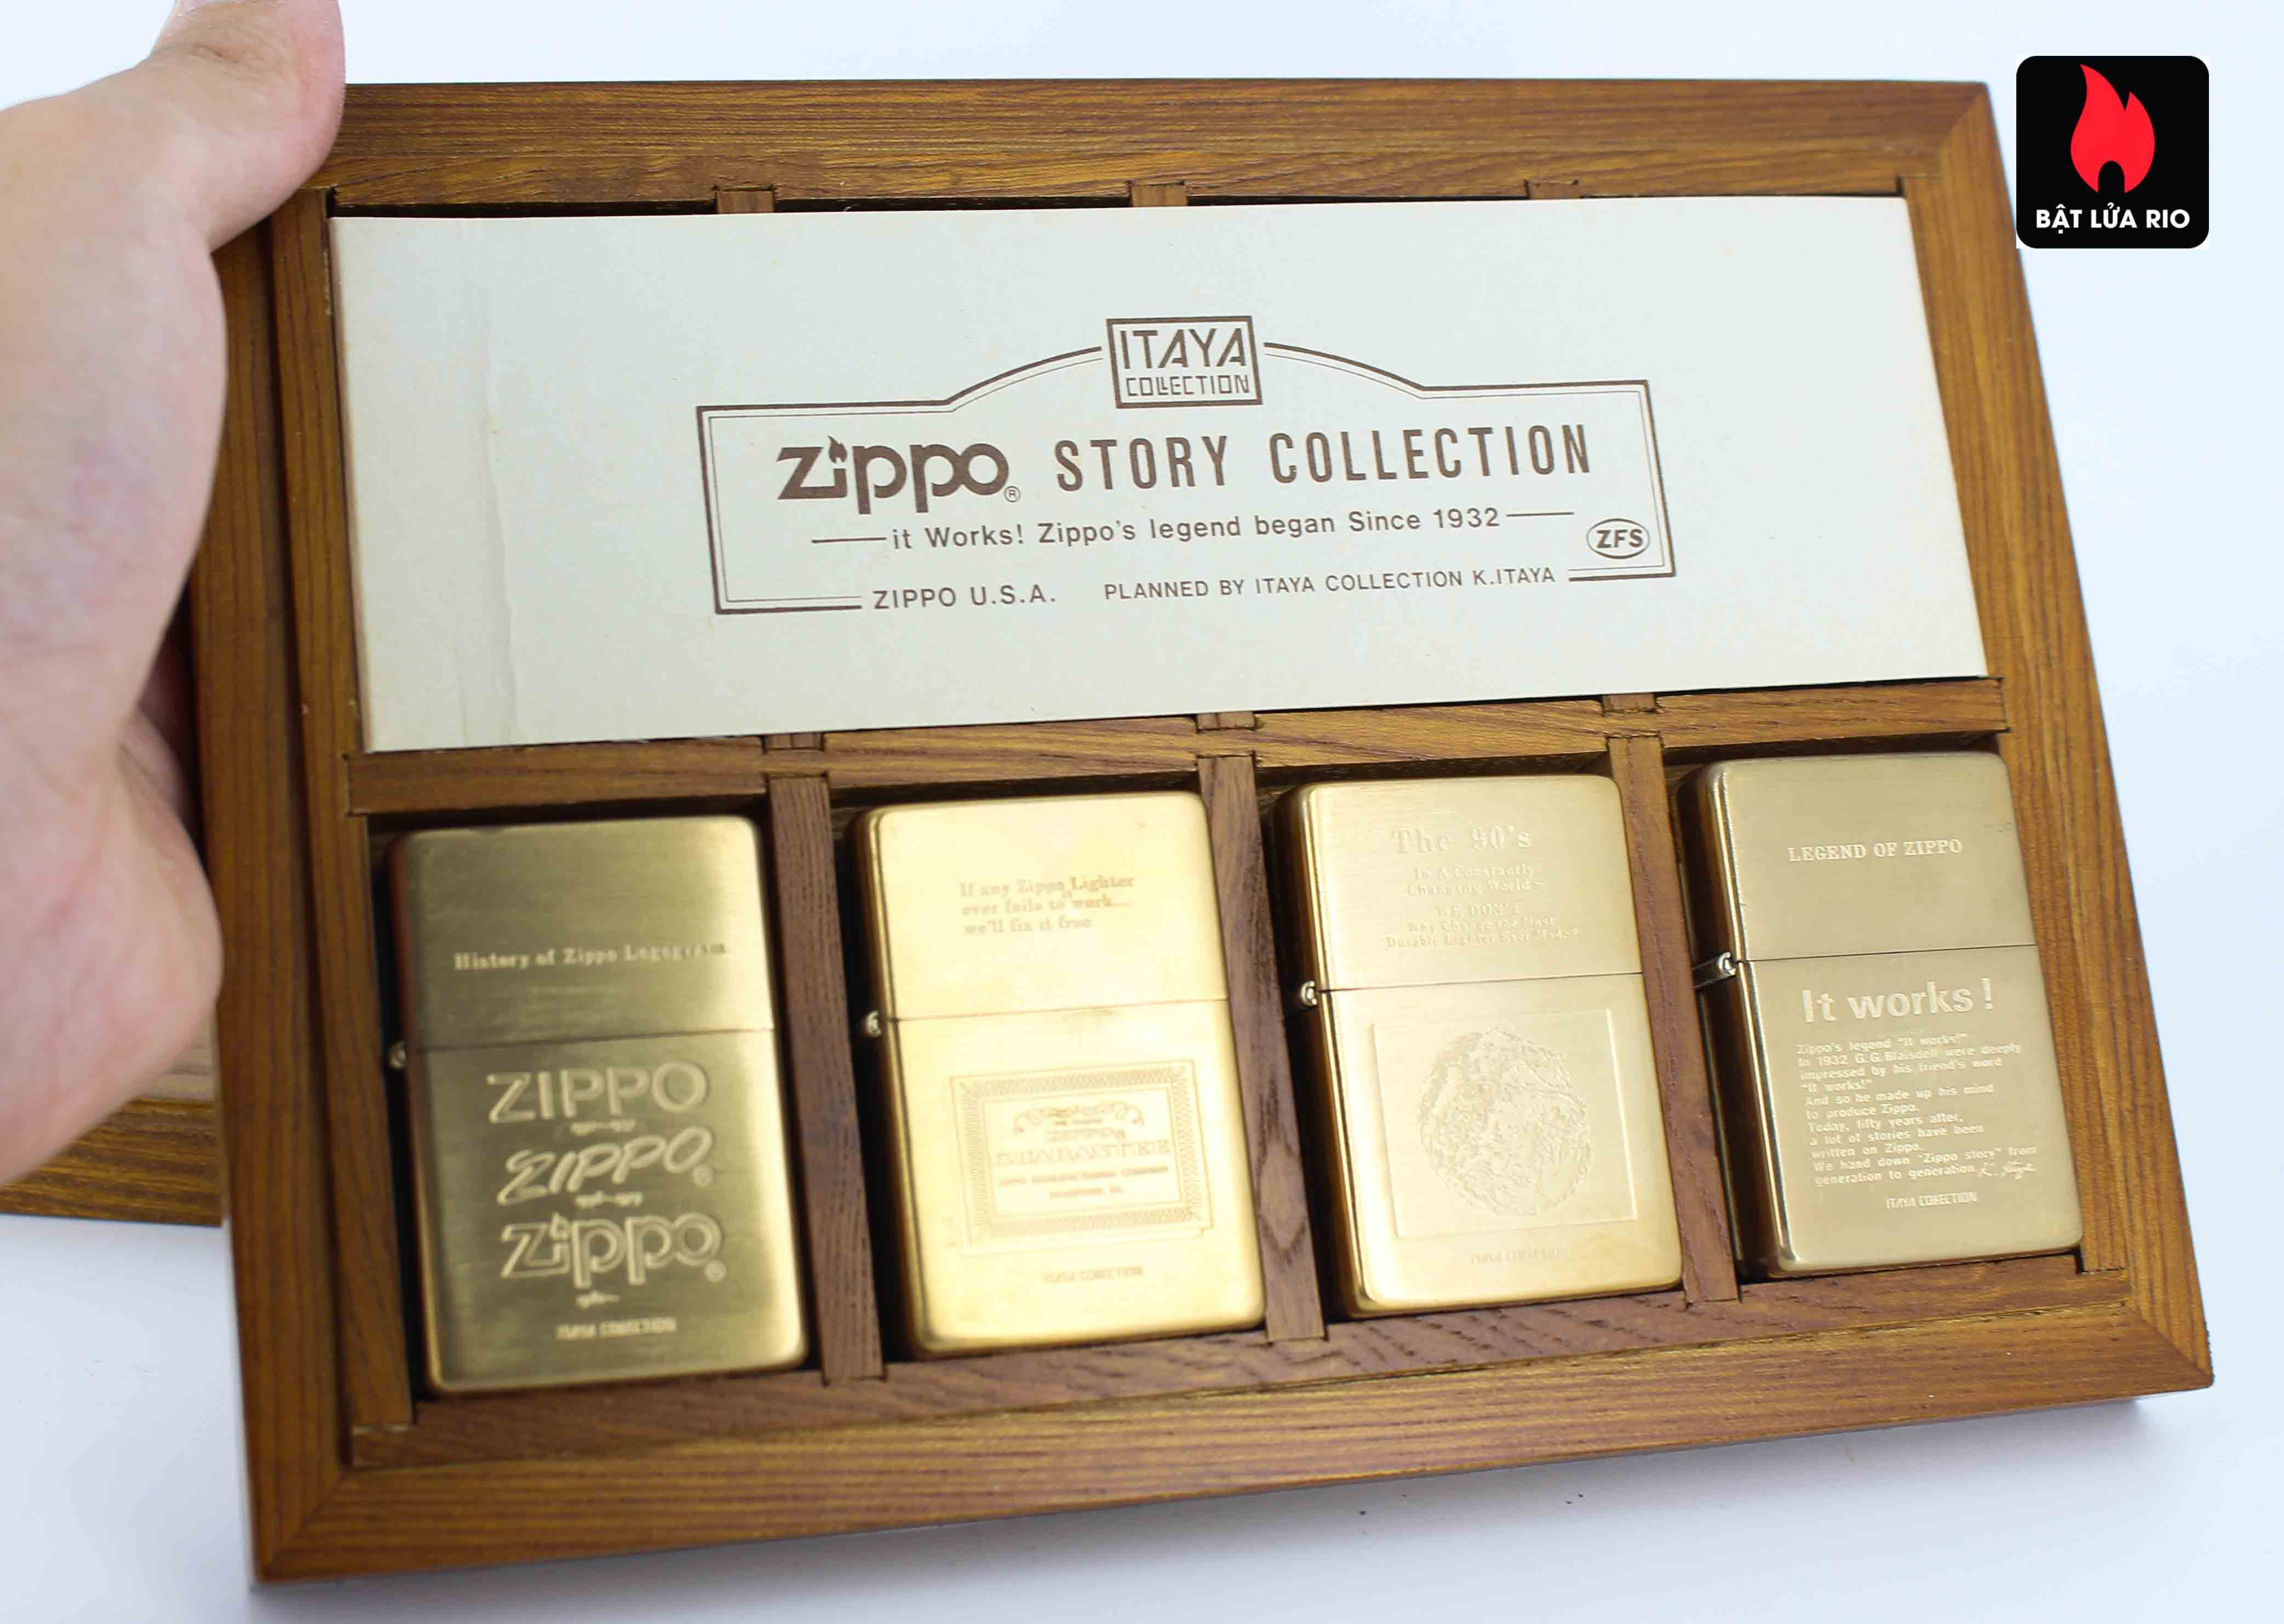 Zippo Serries 1993 - Itaya Colection - Zippo Story Collection 5